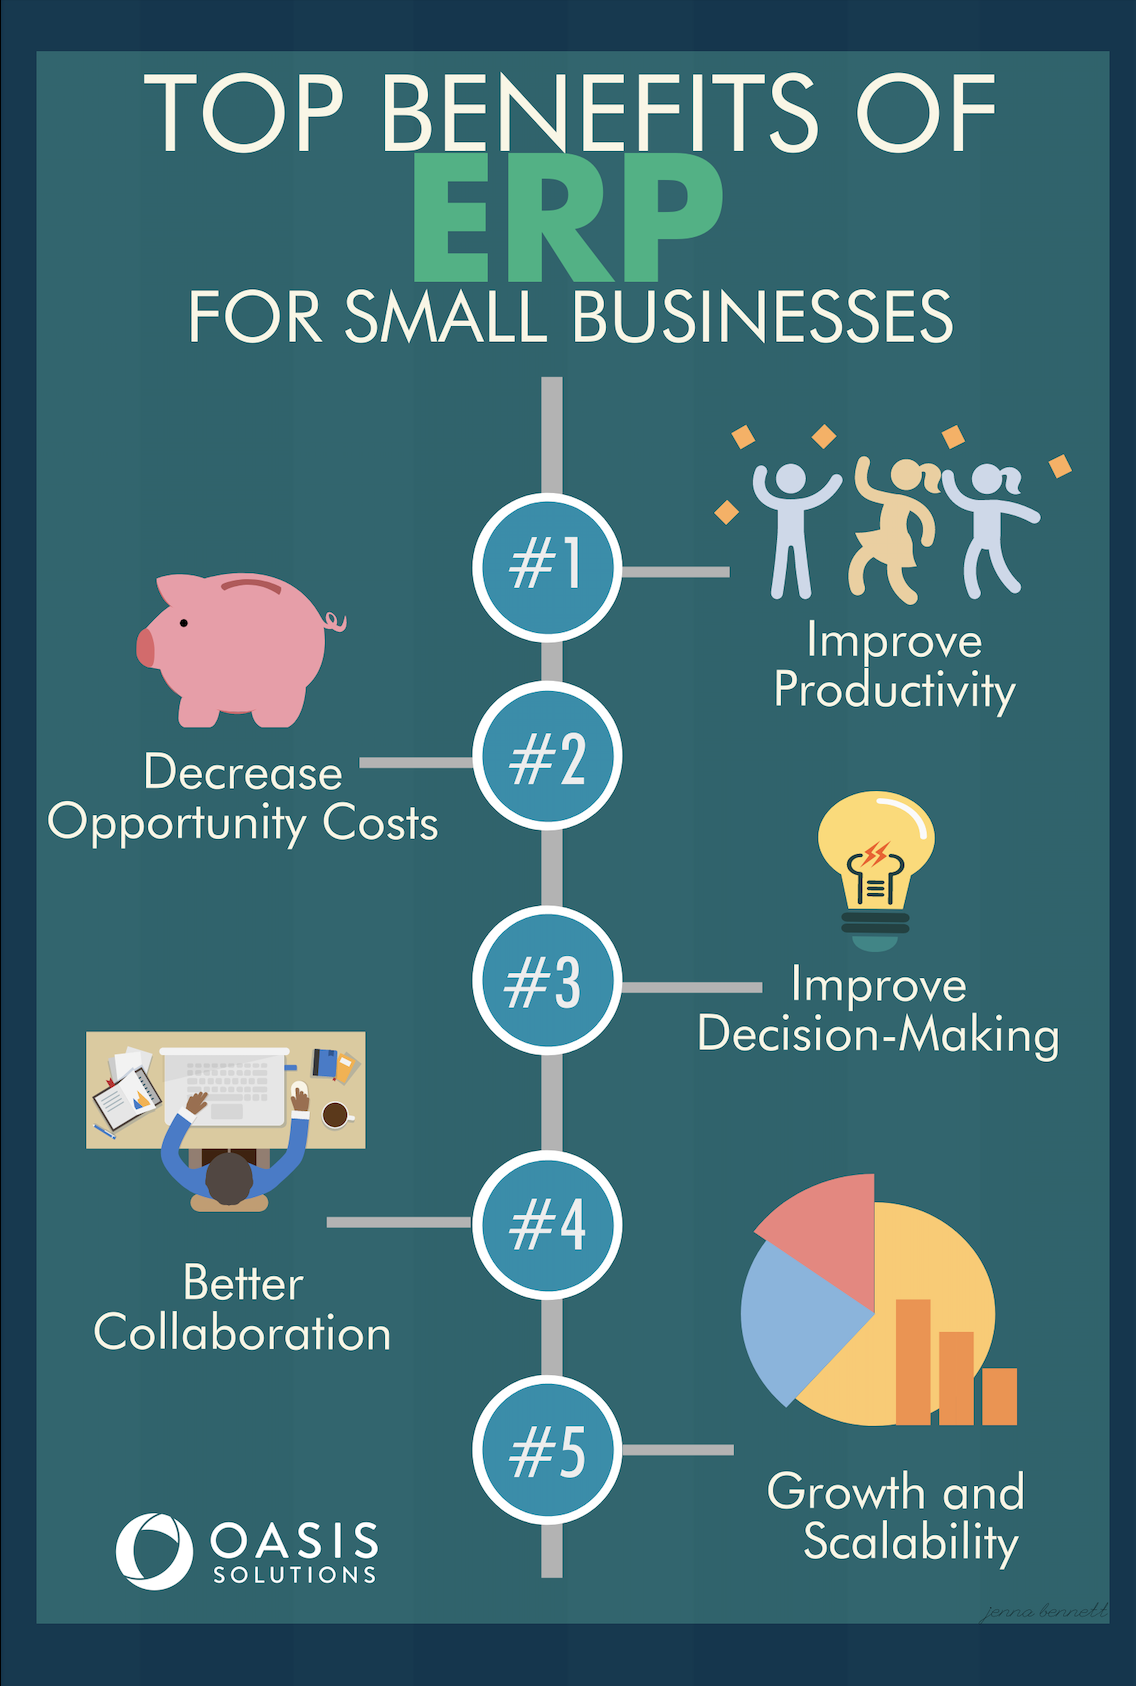 Top Benefits of ERP for Small Businesses